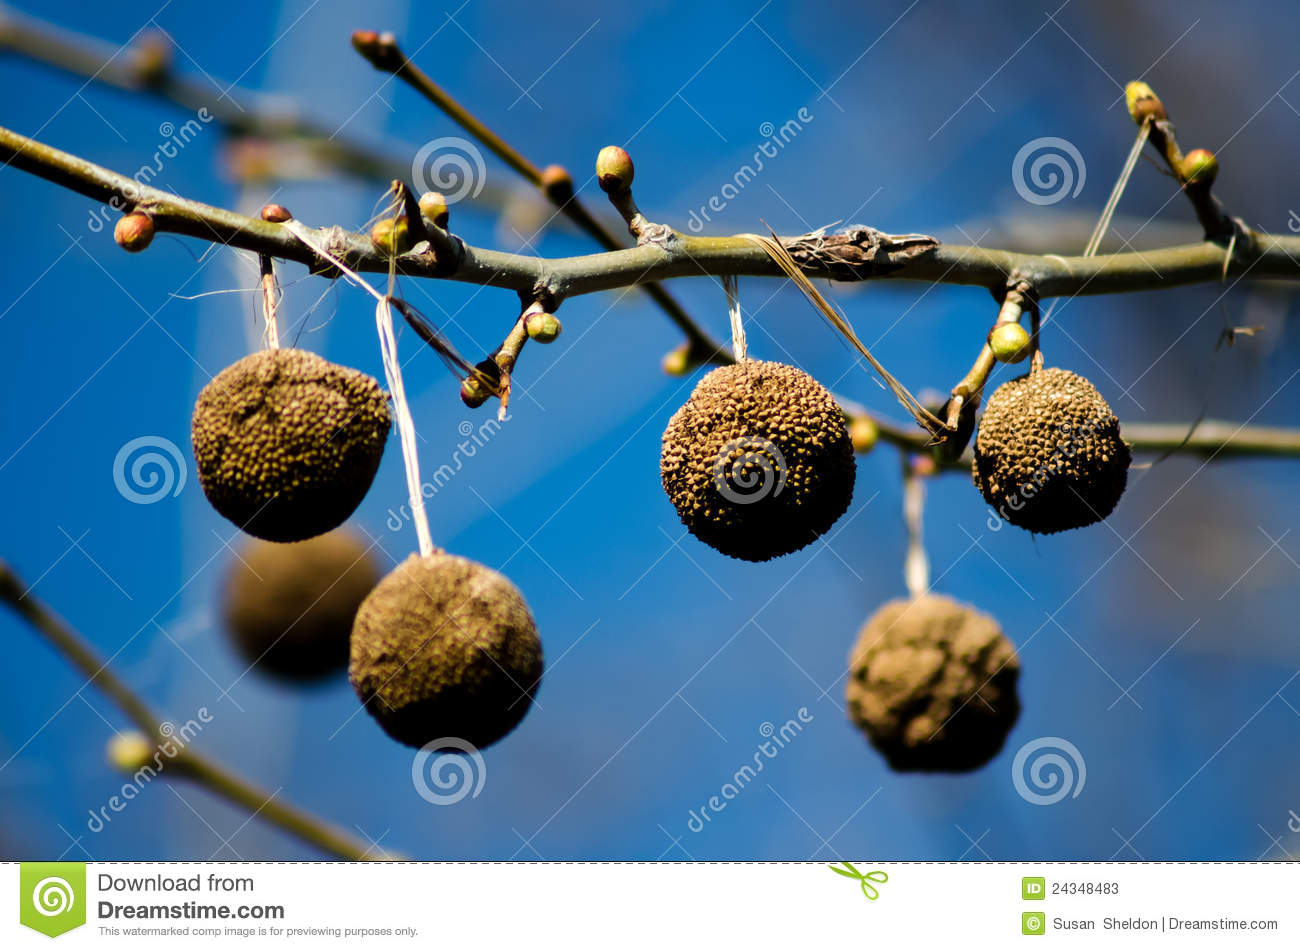 monkey balls stock photos   image 24348483